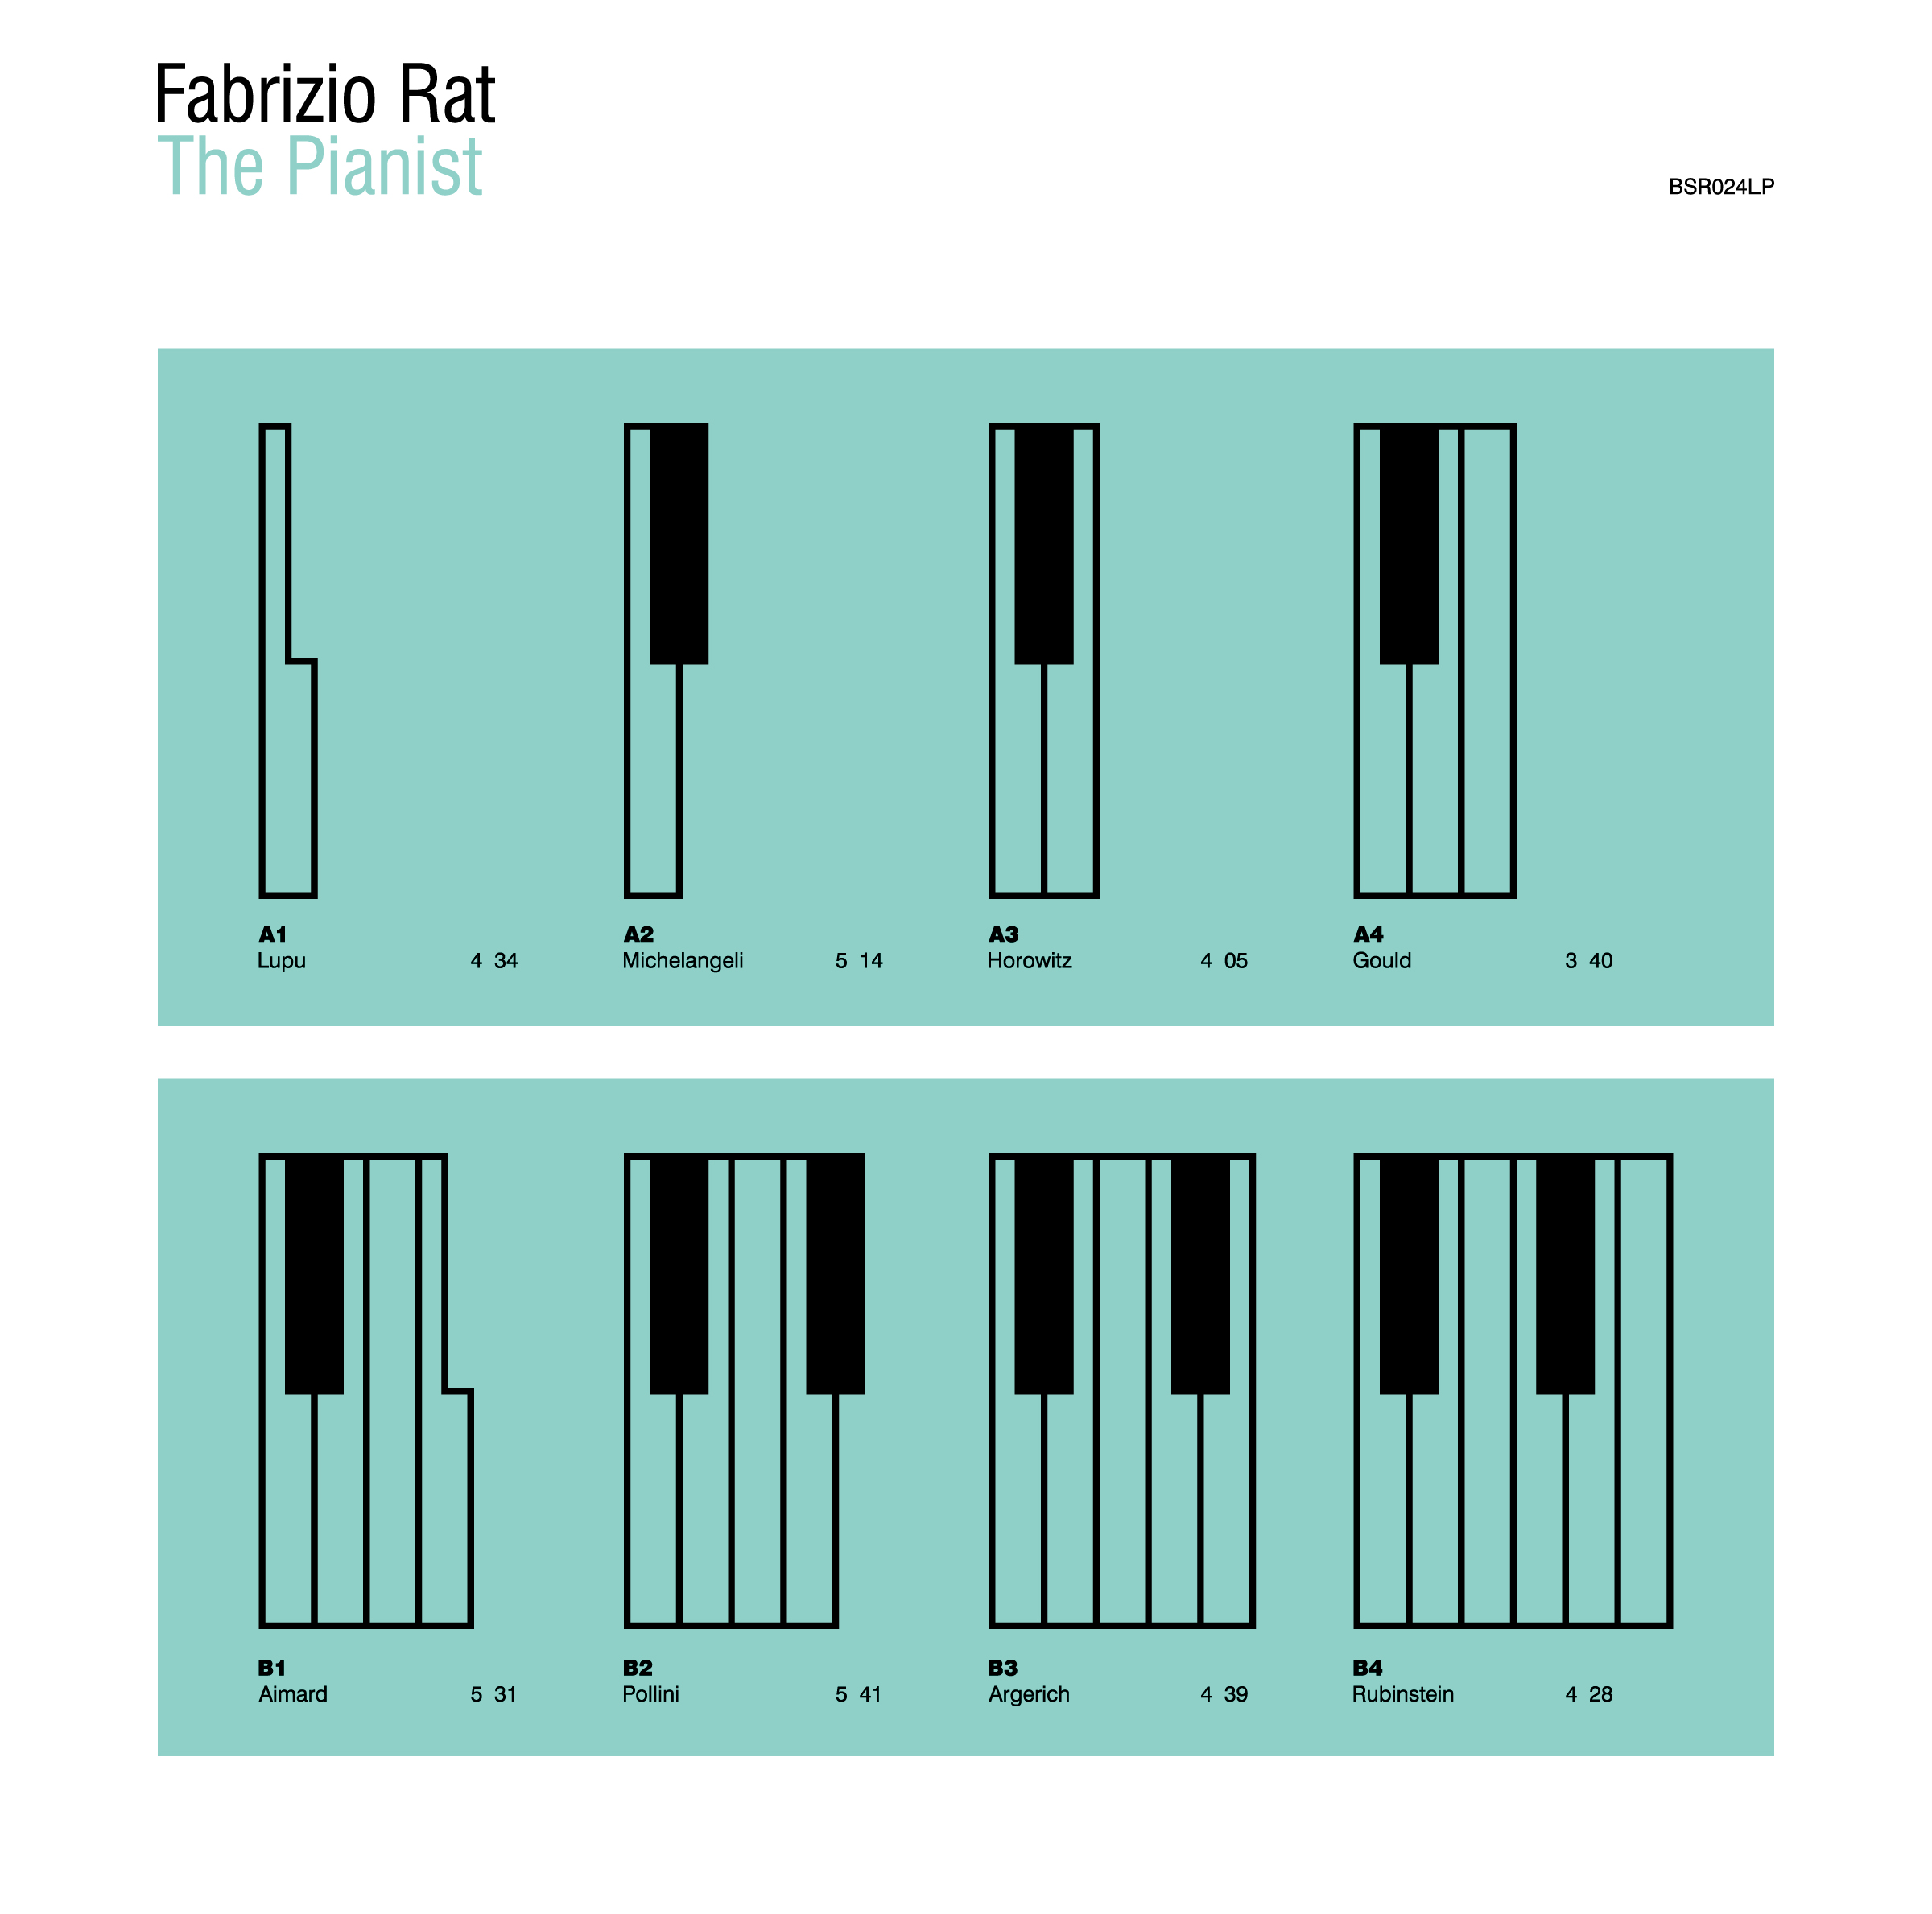 Fabrizio Rat - The Pianist